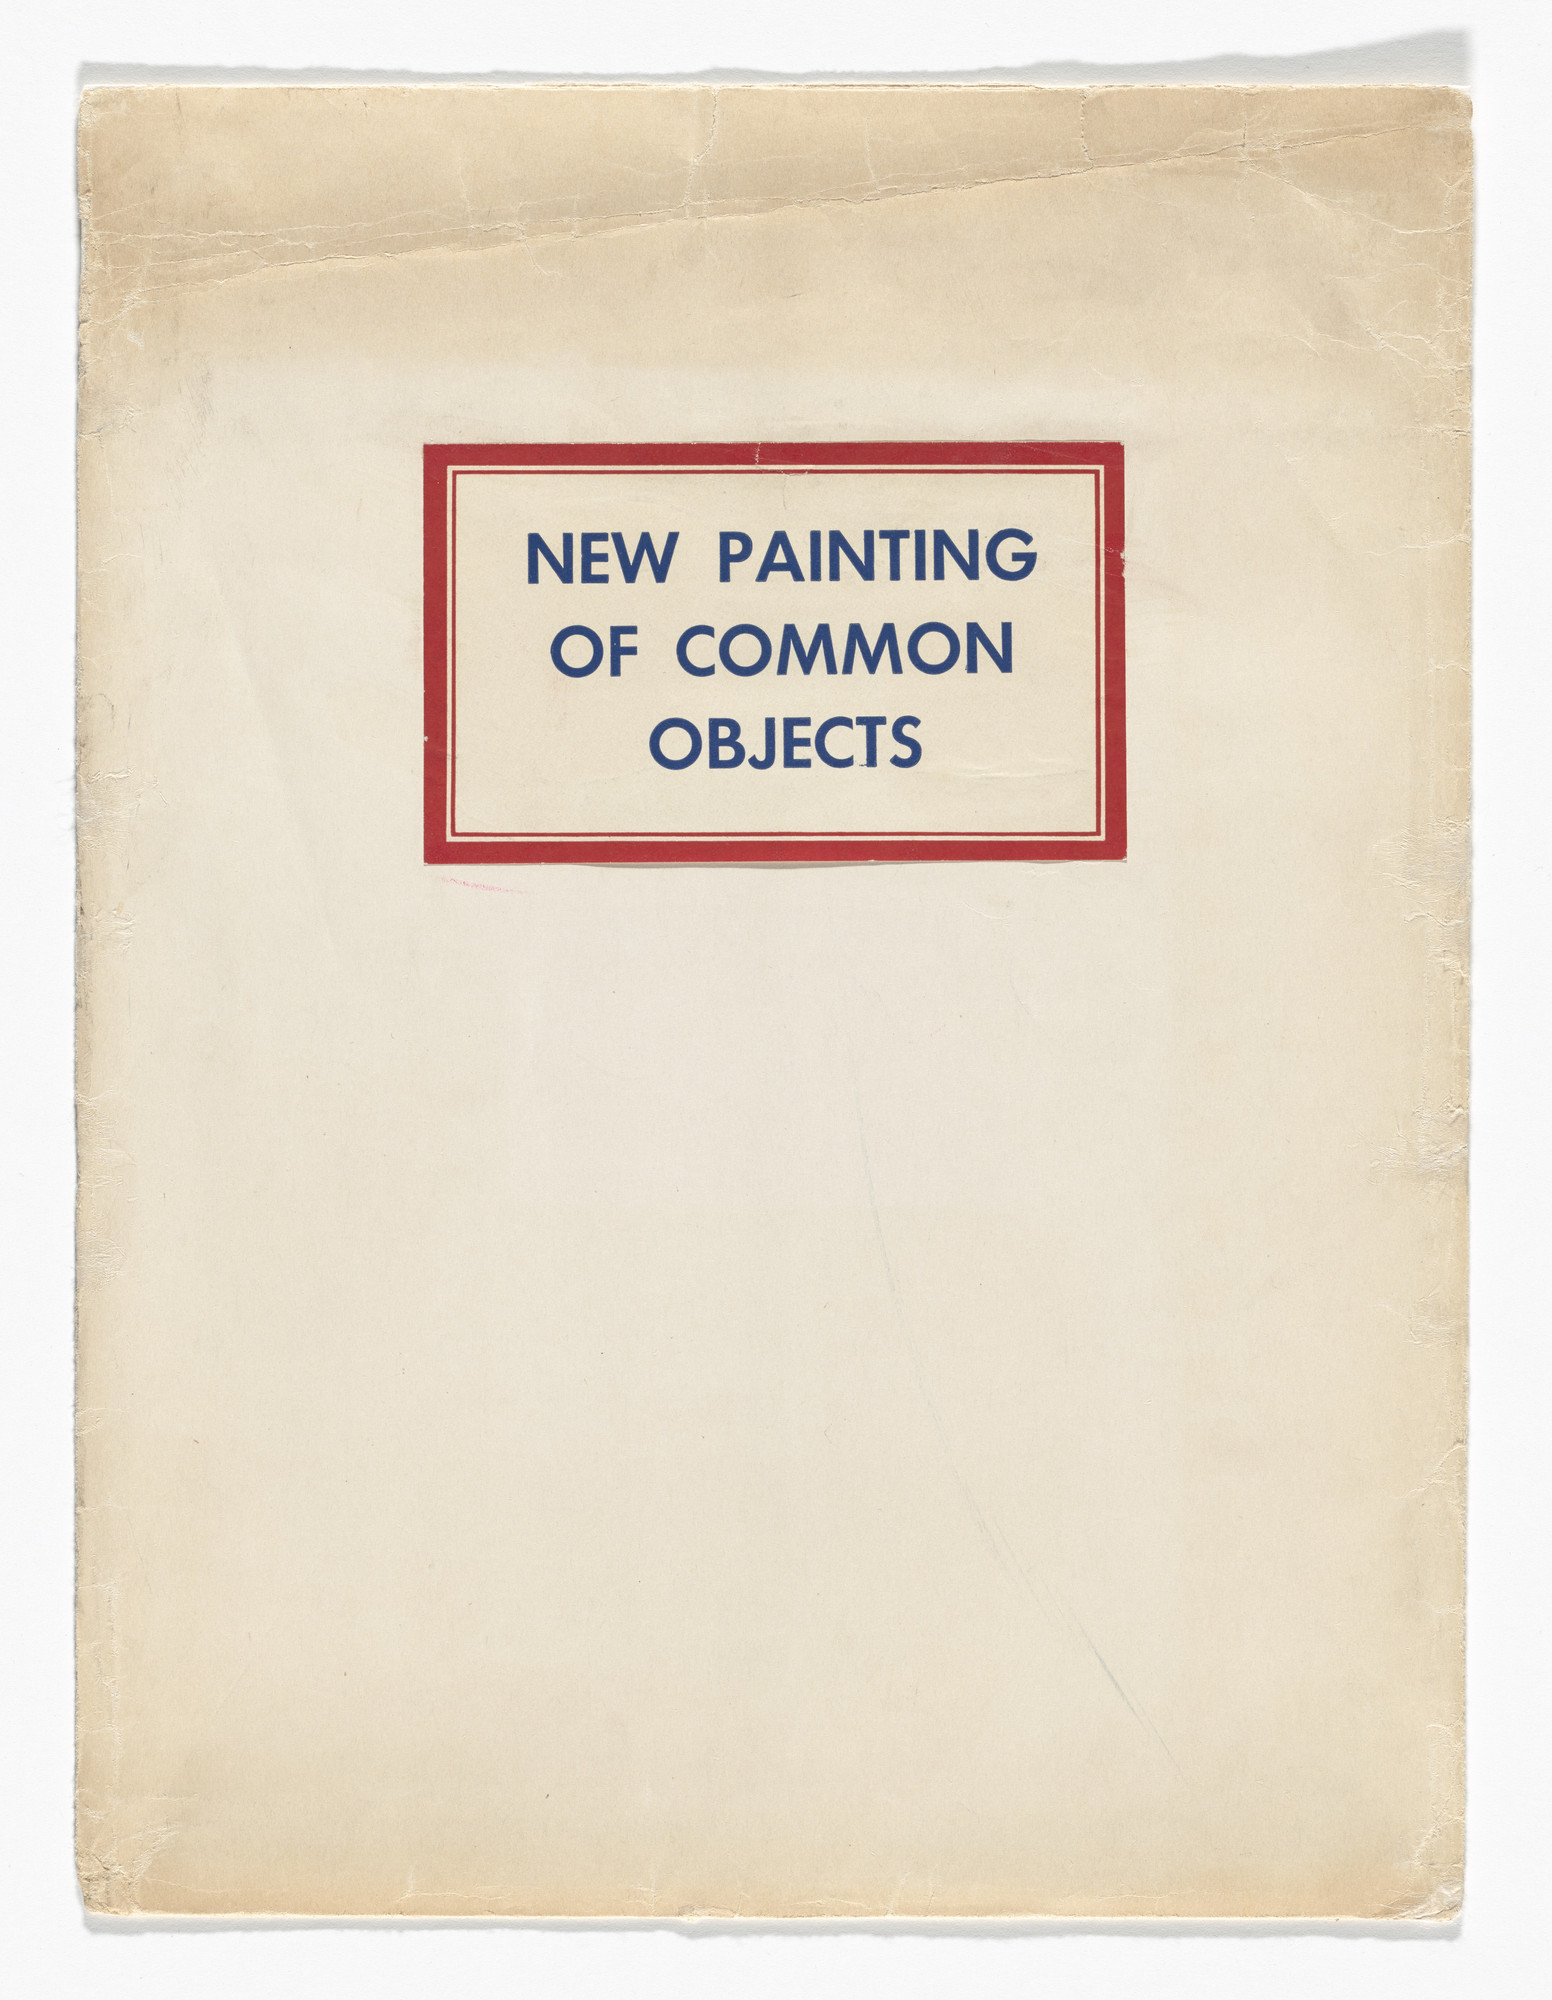 Various Artists, Jim Dine, Robert Dowd, Joe Goode, Phillip Hefferton, Edward Ruscha. New Painting of Common Objects. 1962